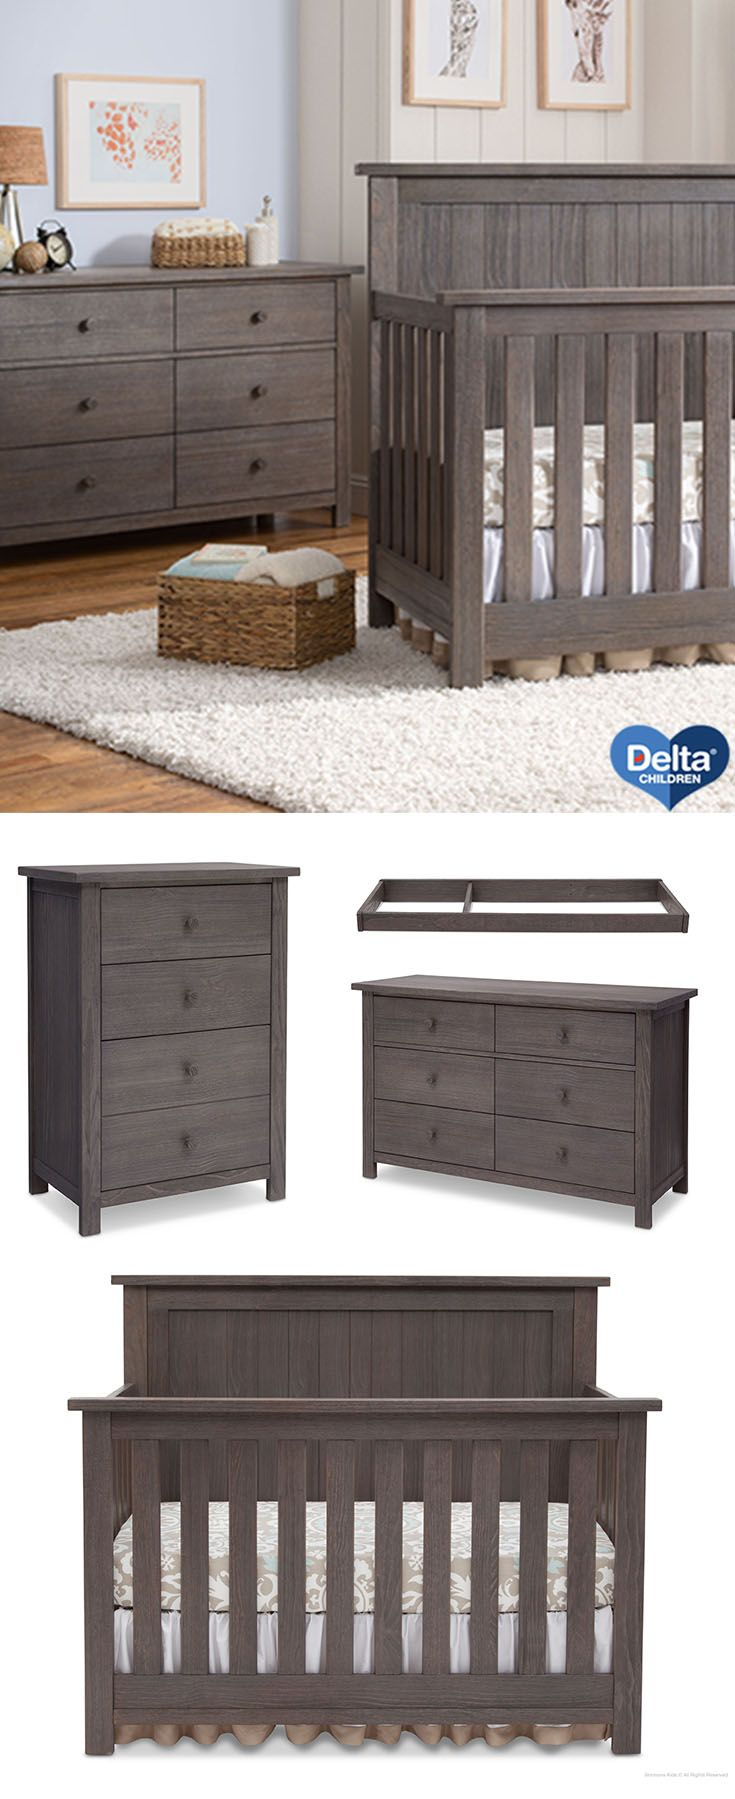 affordable nursery furniture sets on a gorgeous wooden nursery collection from serta for delta children the northbrook 4 i baby nursery furniture sets baby nursery furniture rustic baby nurseries pinterest